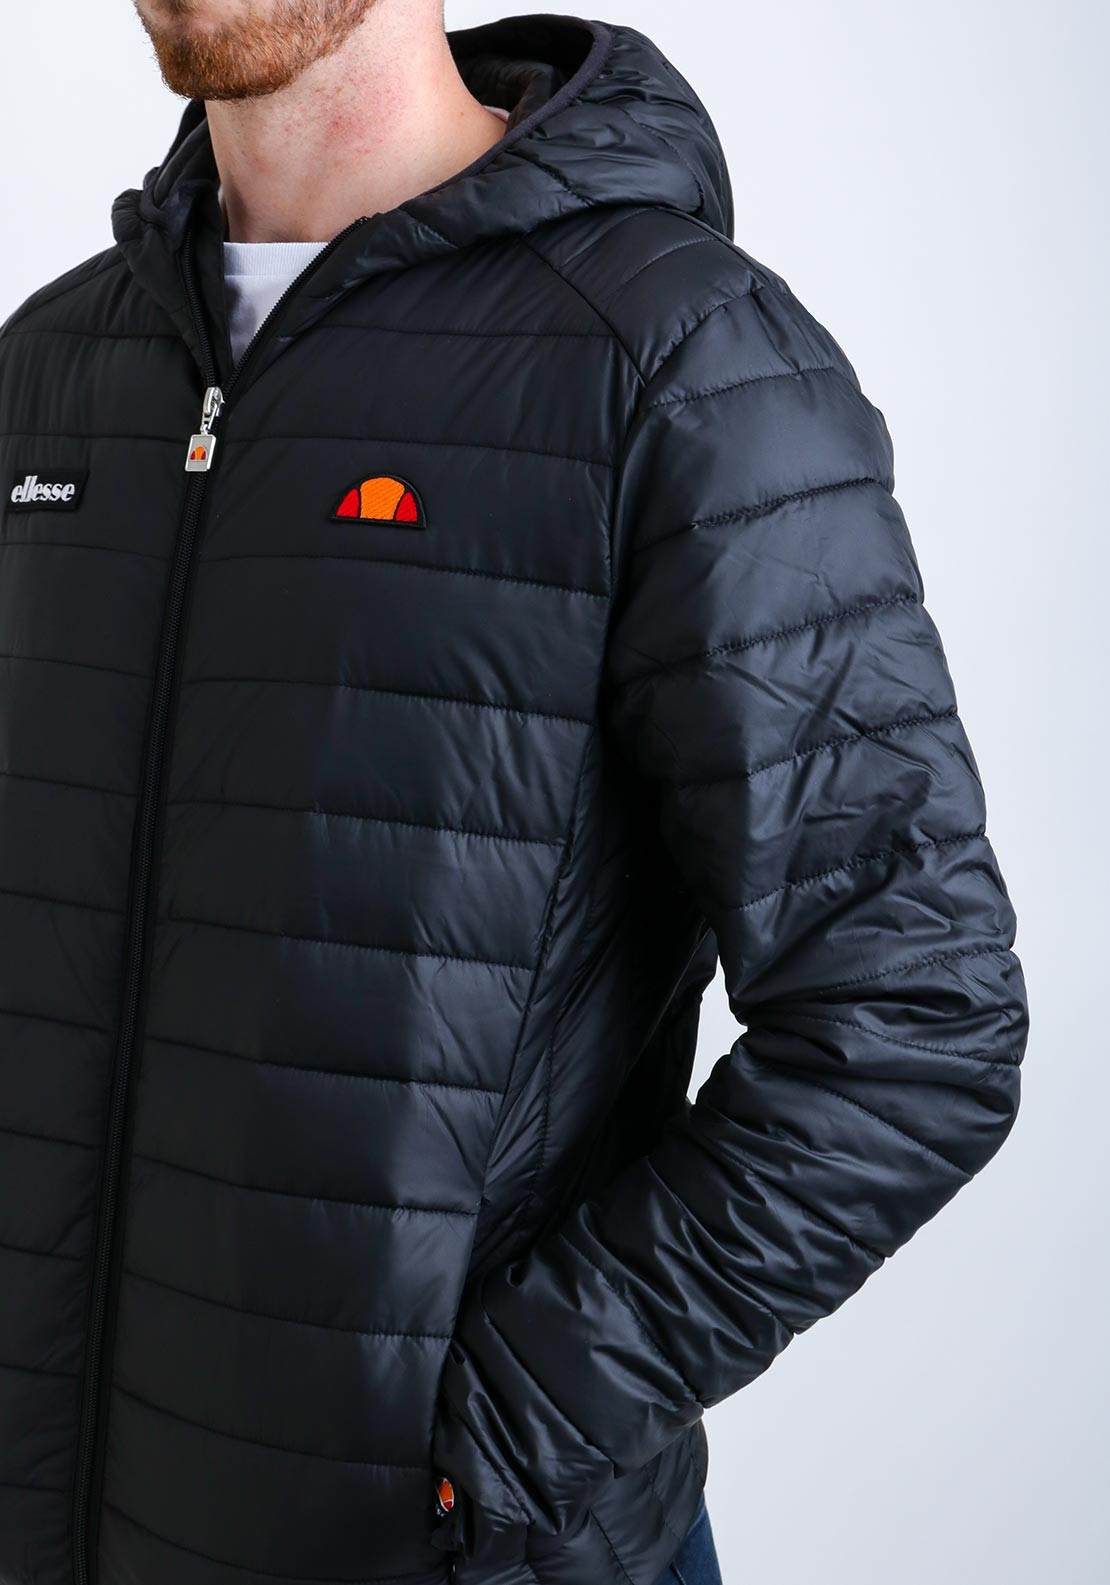 4c35aaa48d Ellesse Men's Lombardy Padded Jacket, Black